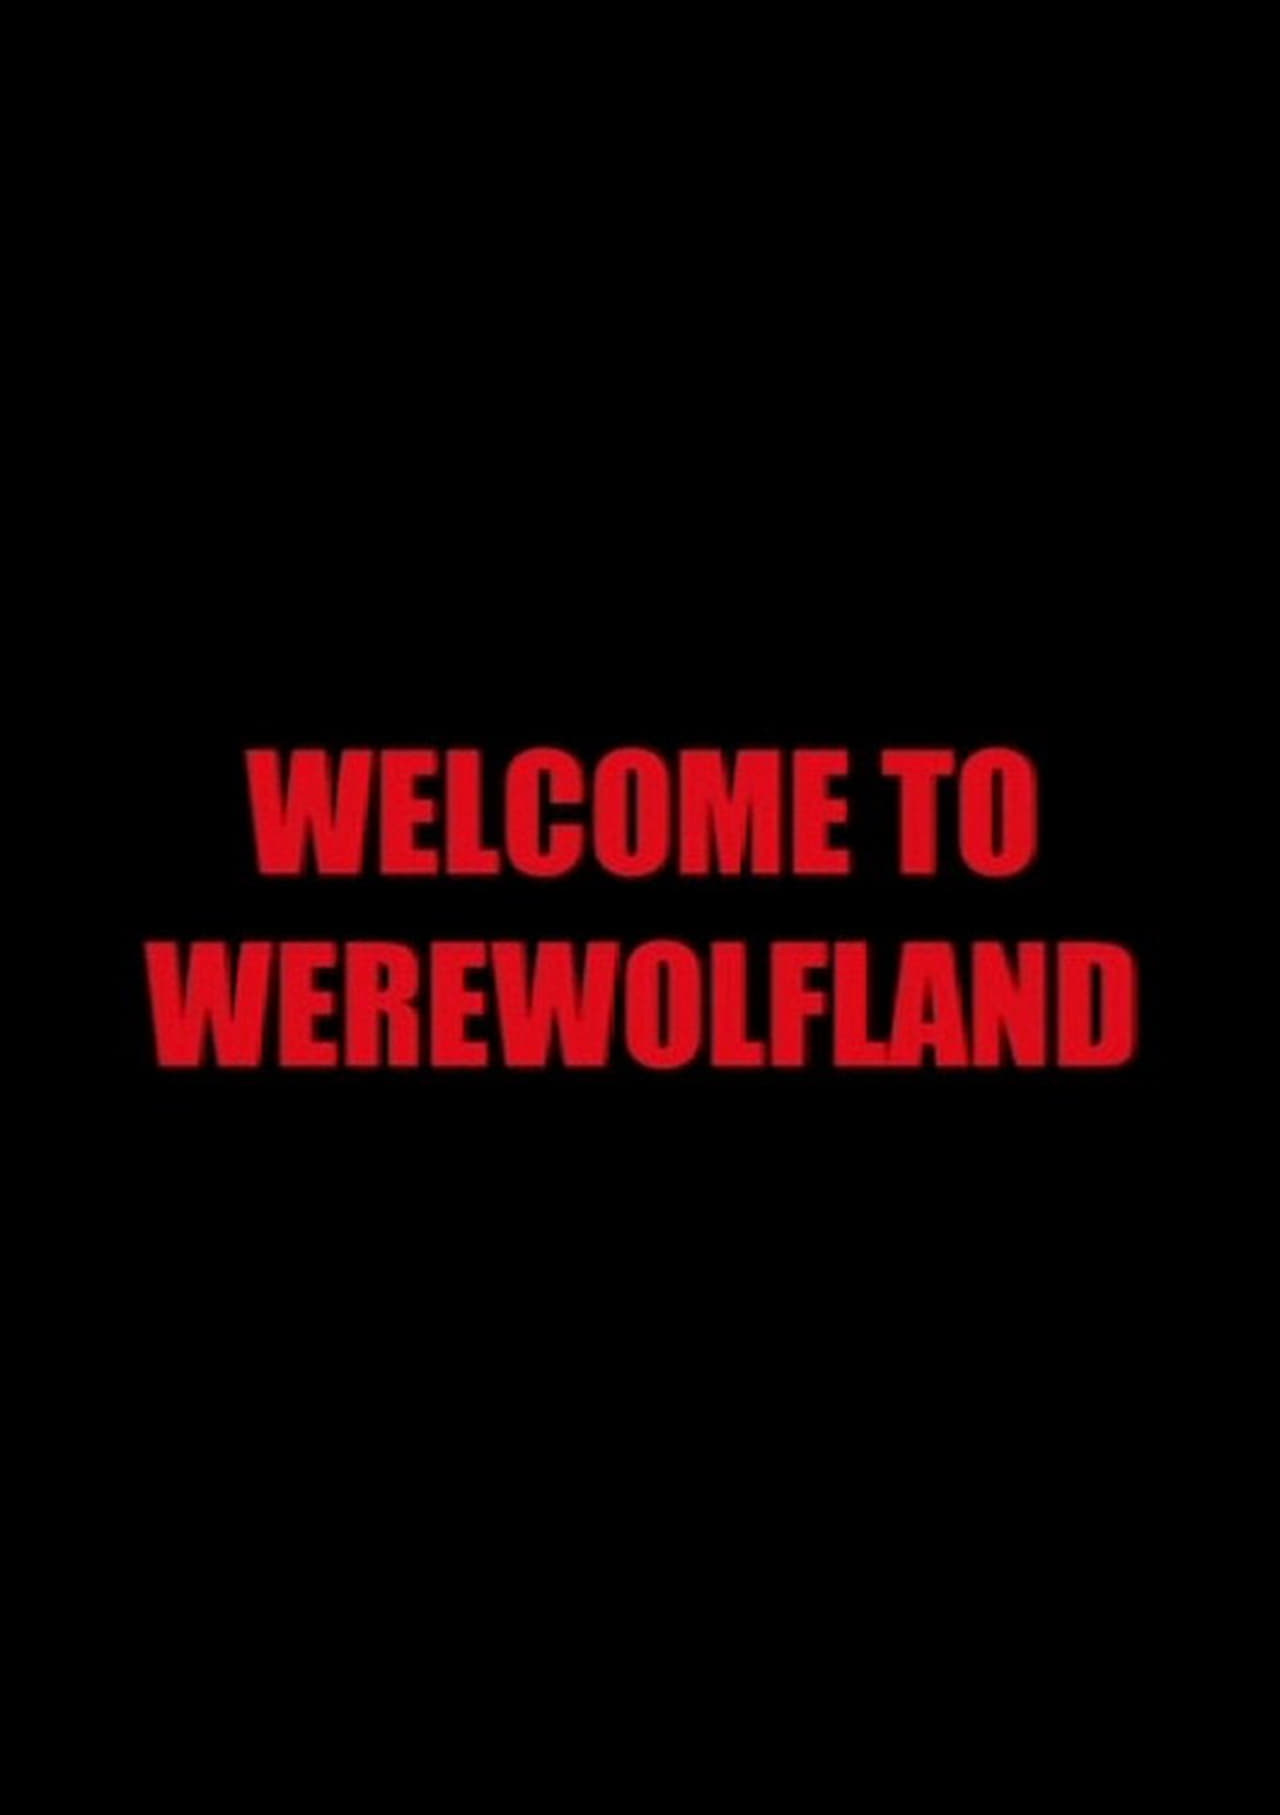 Welcome to Werewolfland